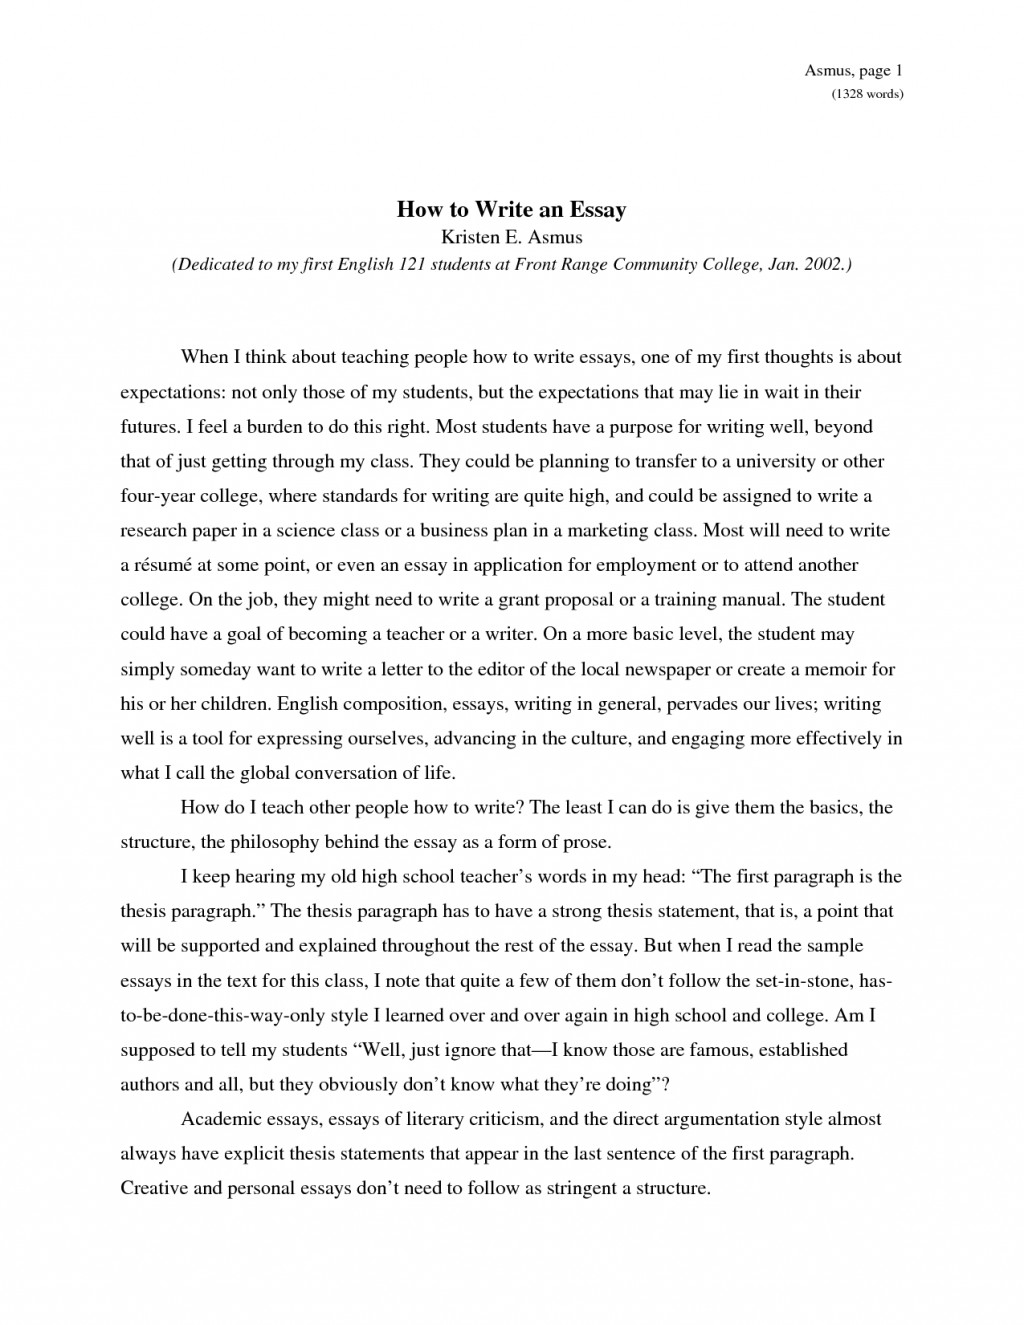 005 How To Essays Essay Example Write An Obfuscata Sample Of L Excellent For 4th Grade Scholarships Large